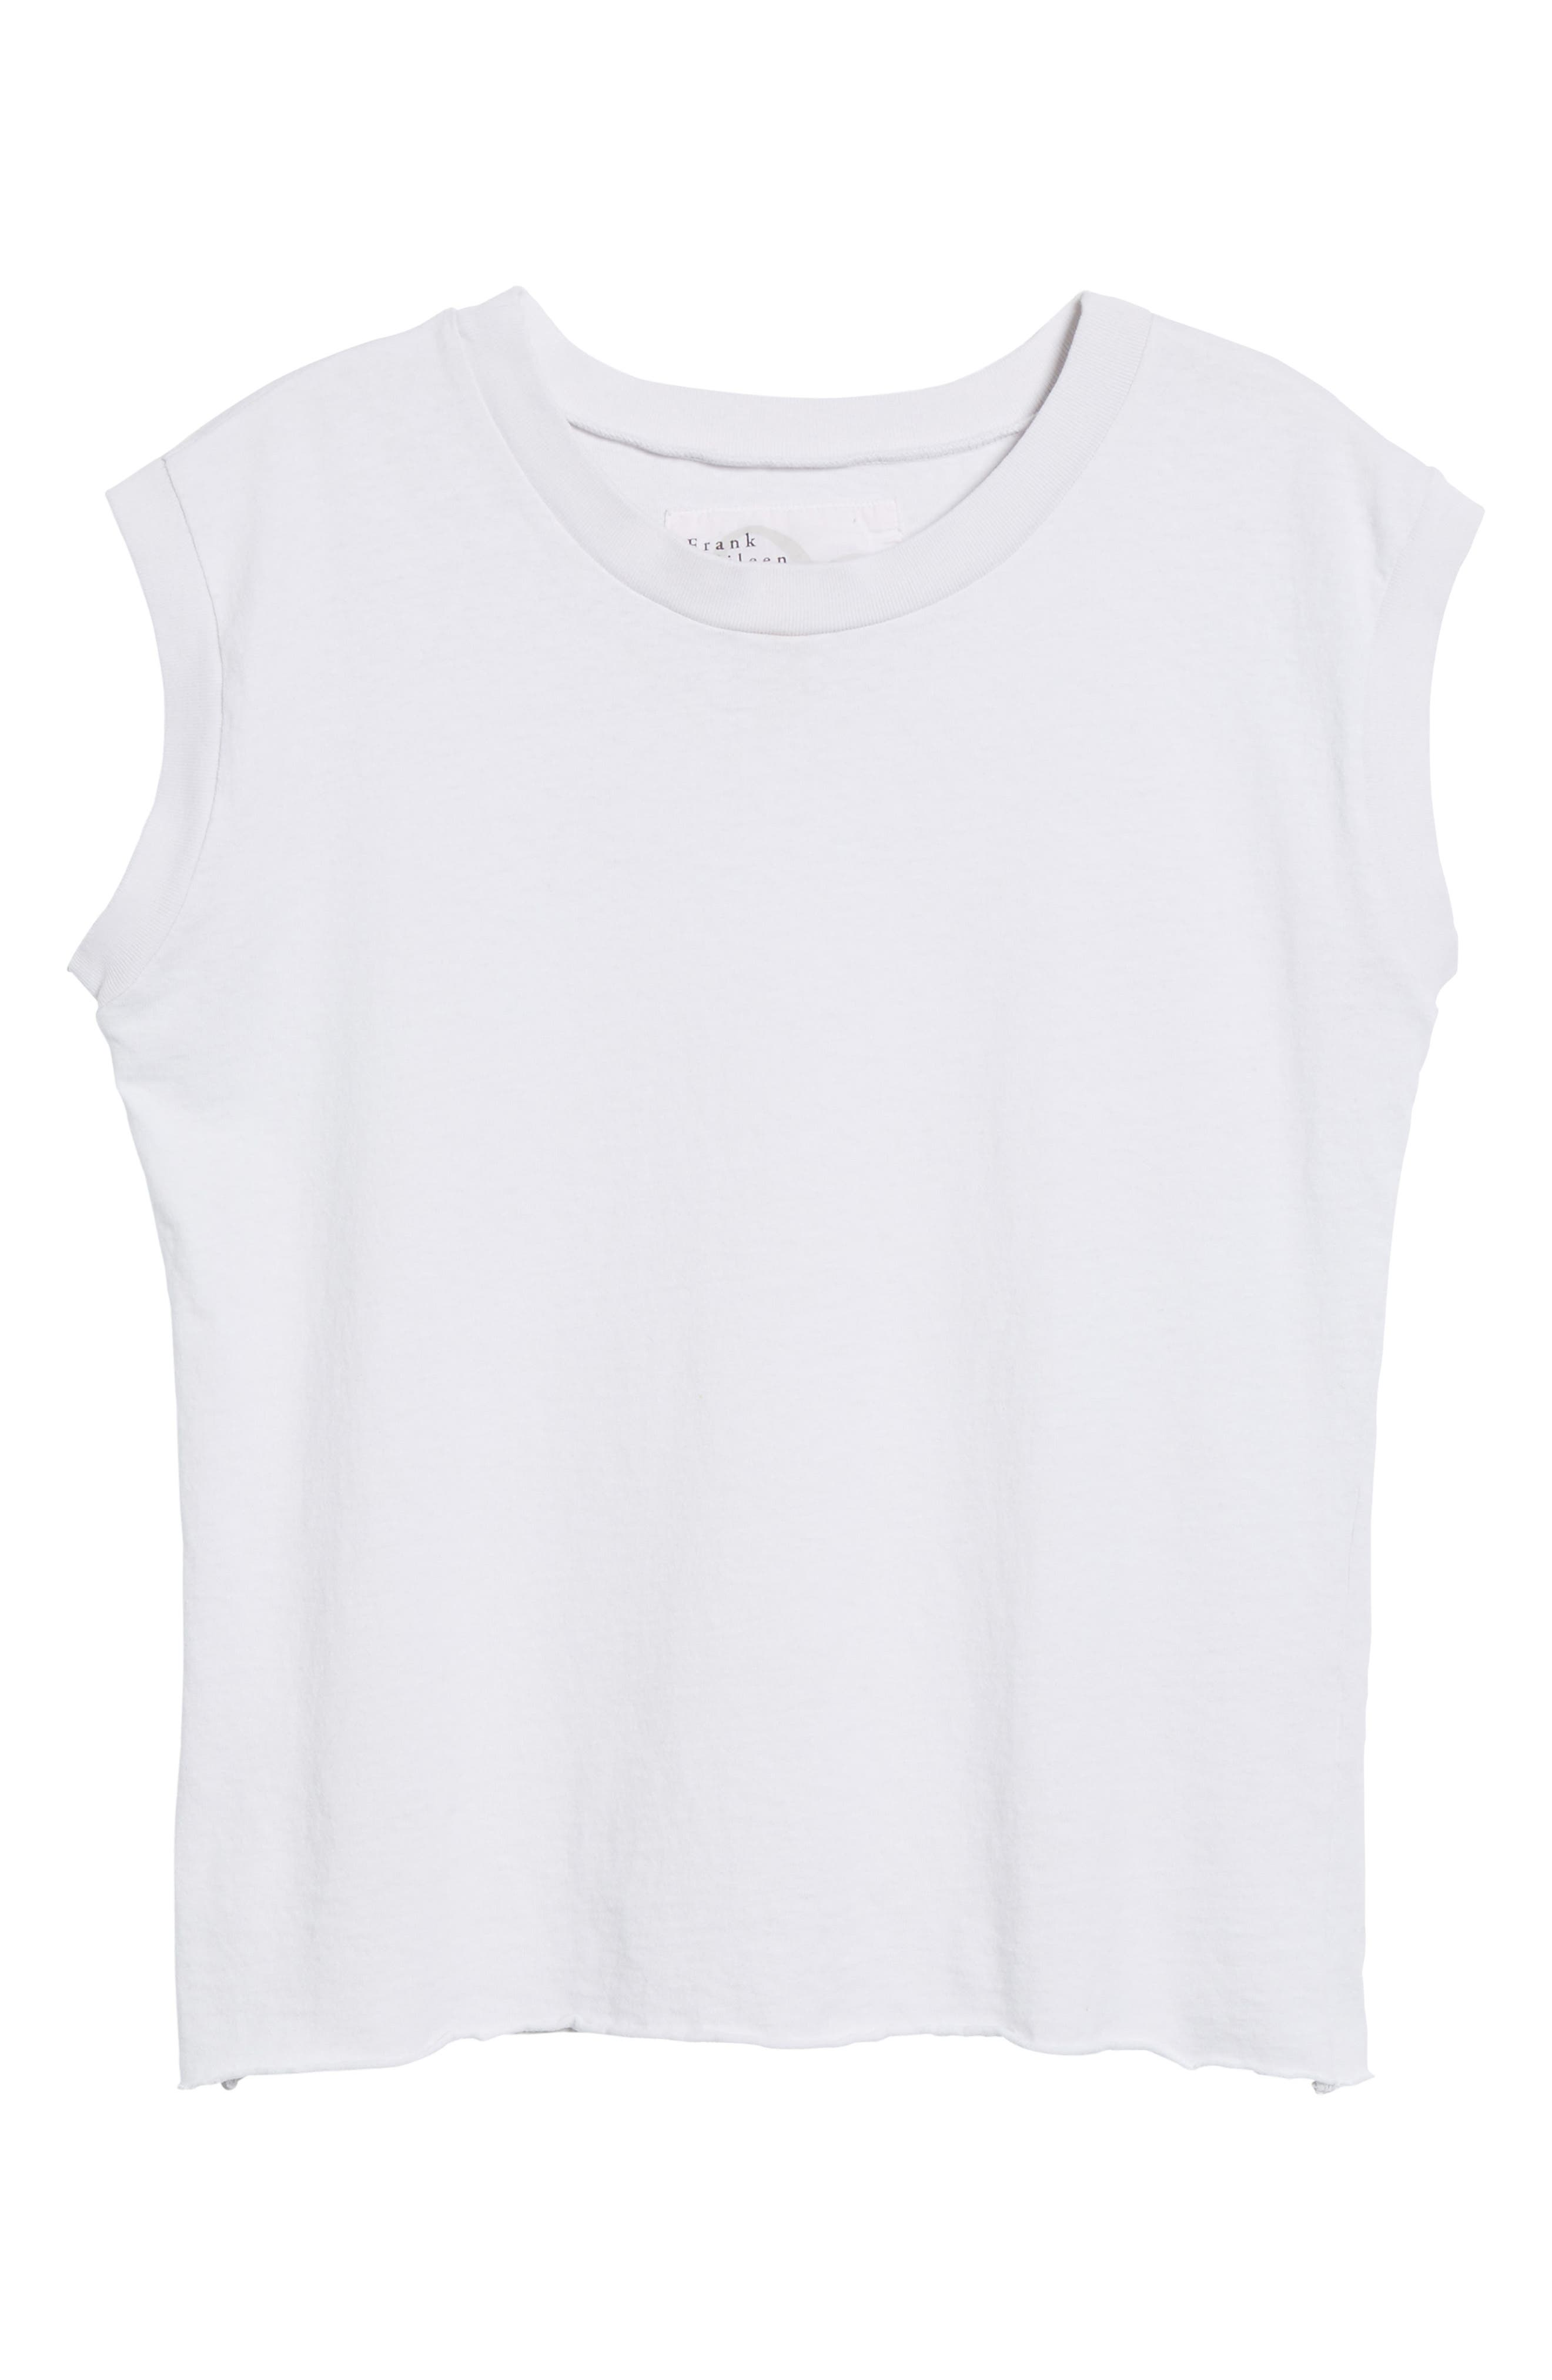 Tee Lab Muscle Tank,                             Alternate thumbnail 6, color,                             124